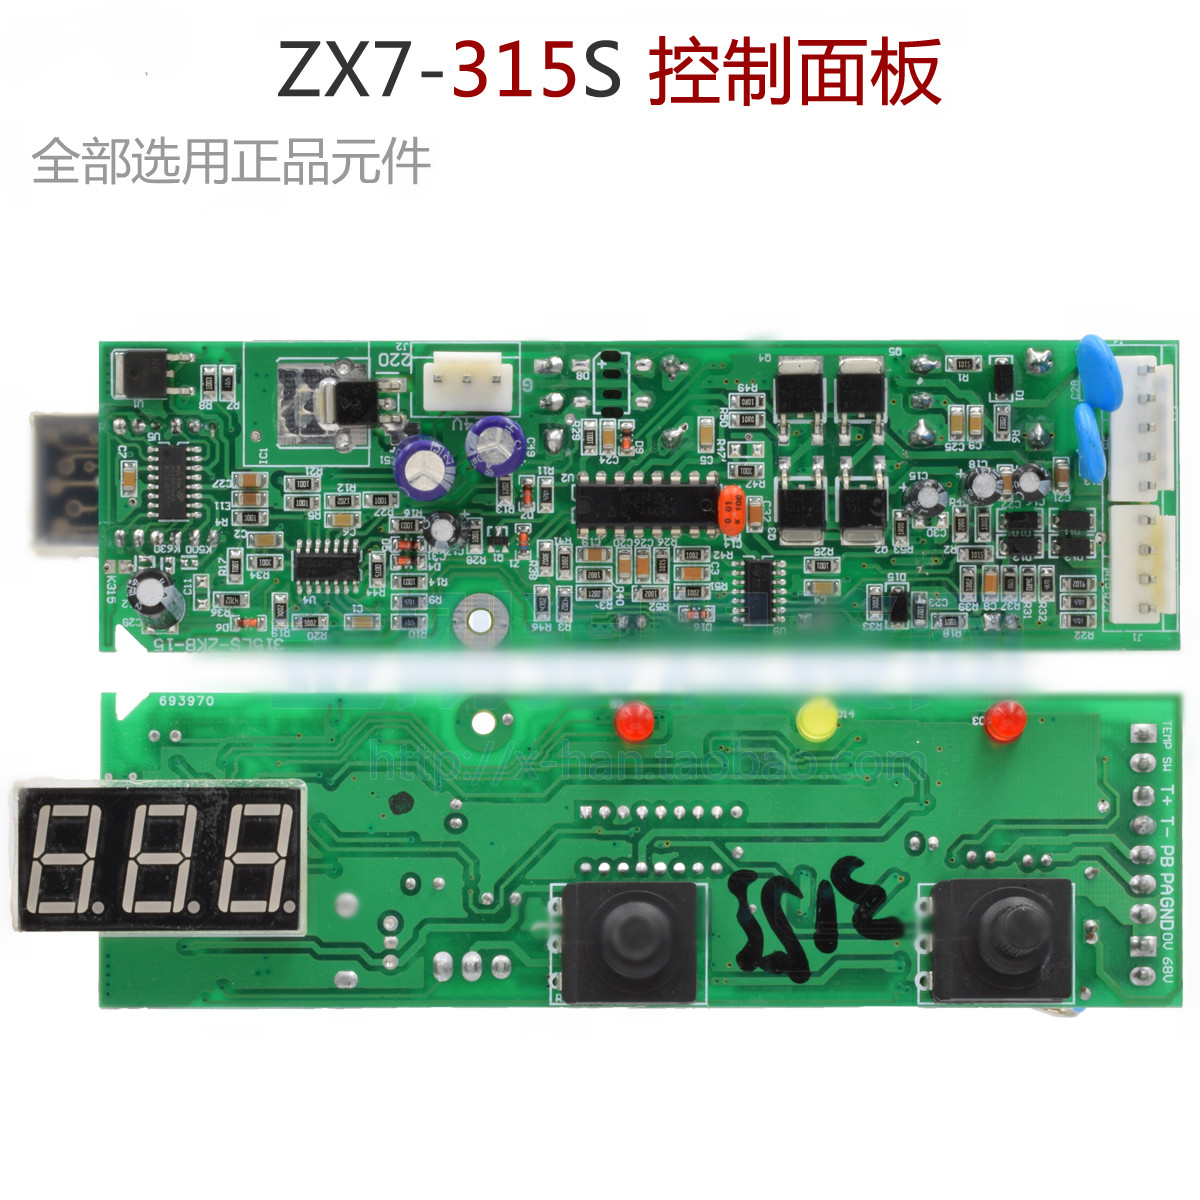 Zx7 315 400 630 Igbt Inverter Welder Control Panel Main Board Circuit Board Home Appliance Parts Air Conditioner Parts